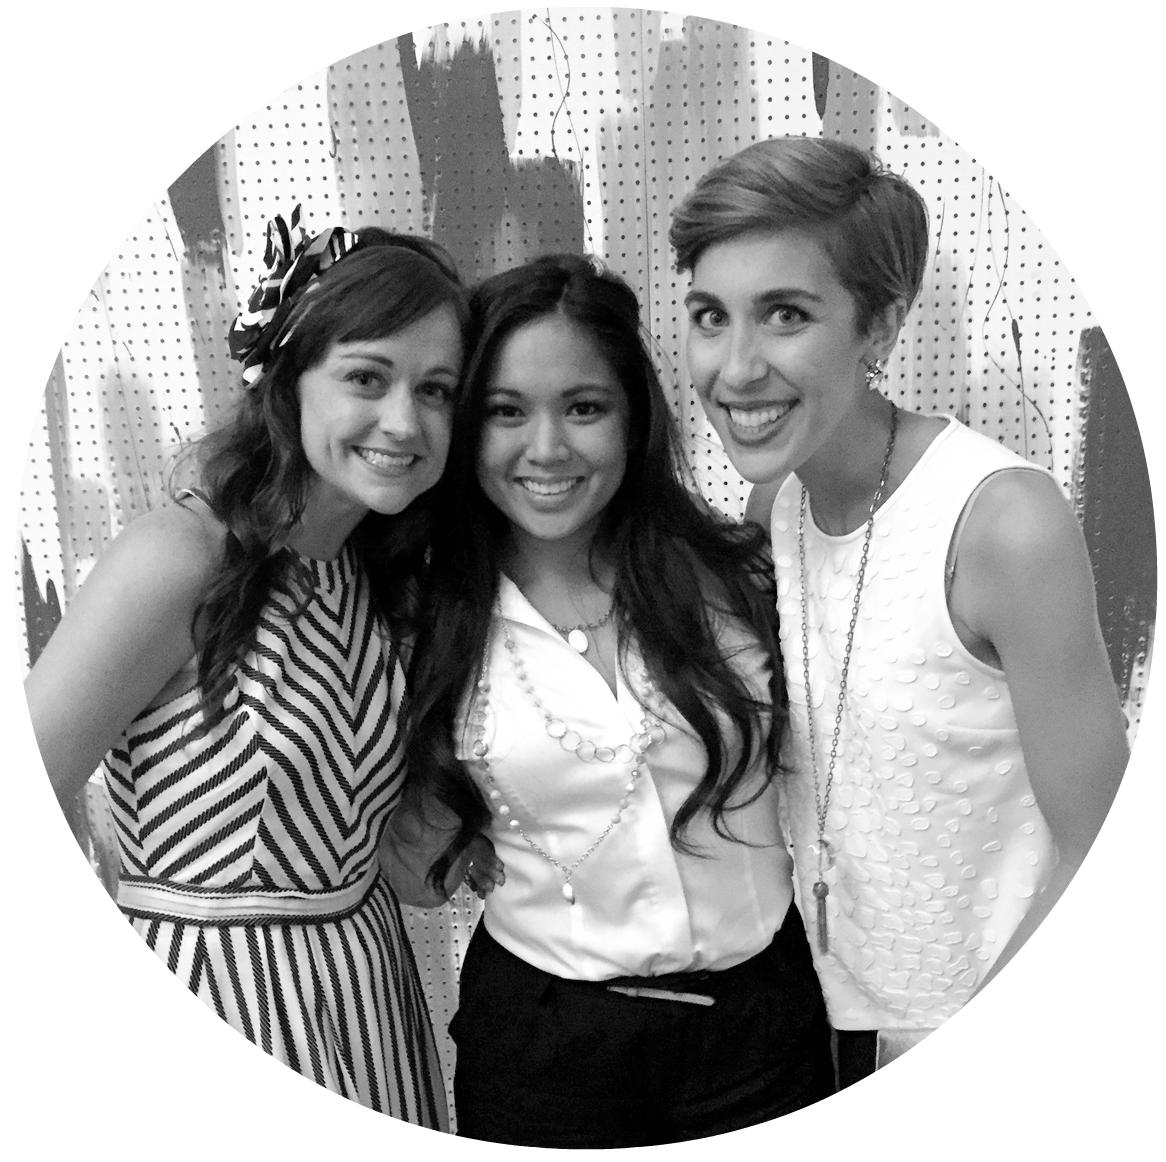 Left to Right: Hilary Rushford, Ashlee Chu, and Jessie Artigue at The Influence Conference, 2014